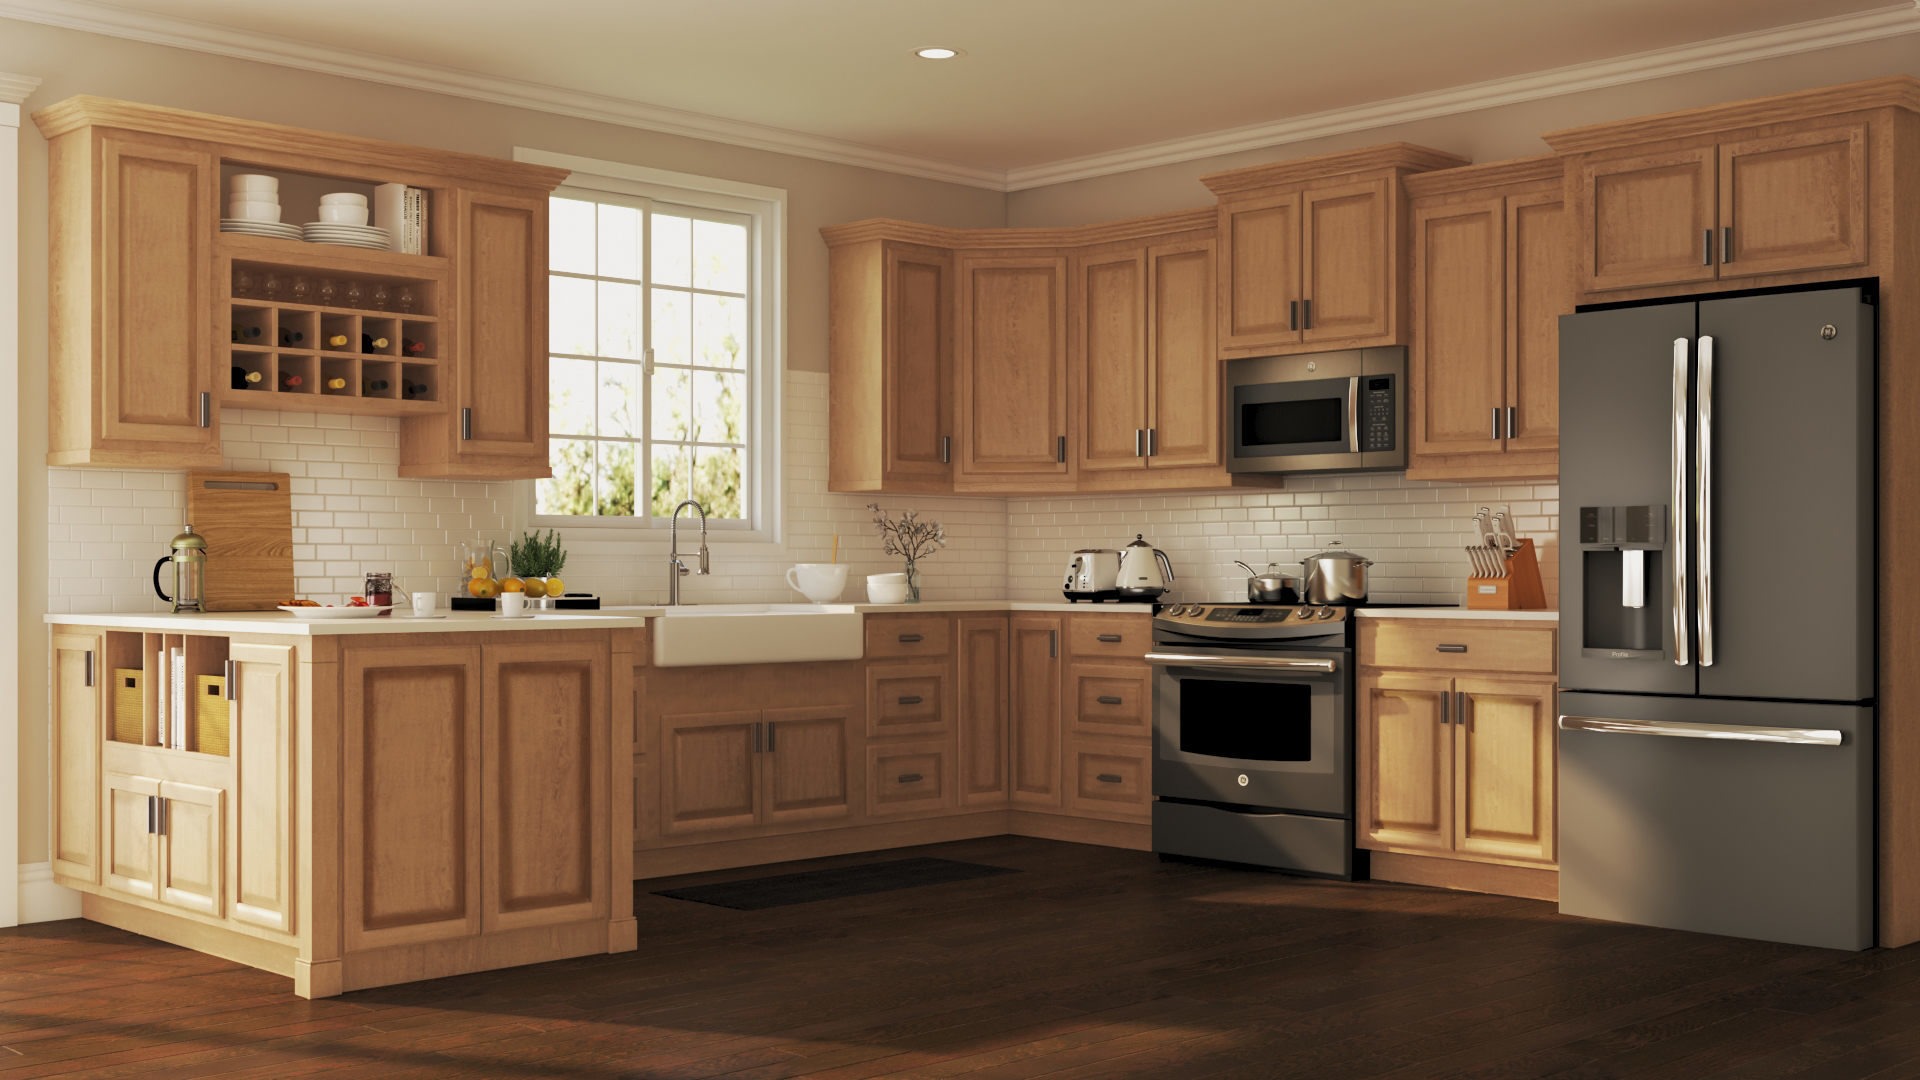 Hampton Wall Kitchen Cabinets In Medium Oak